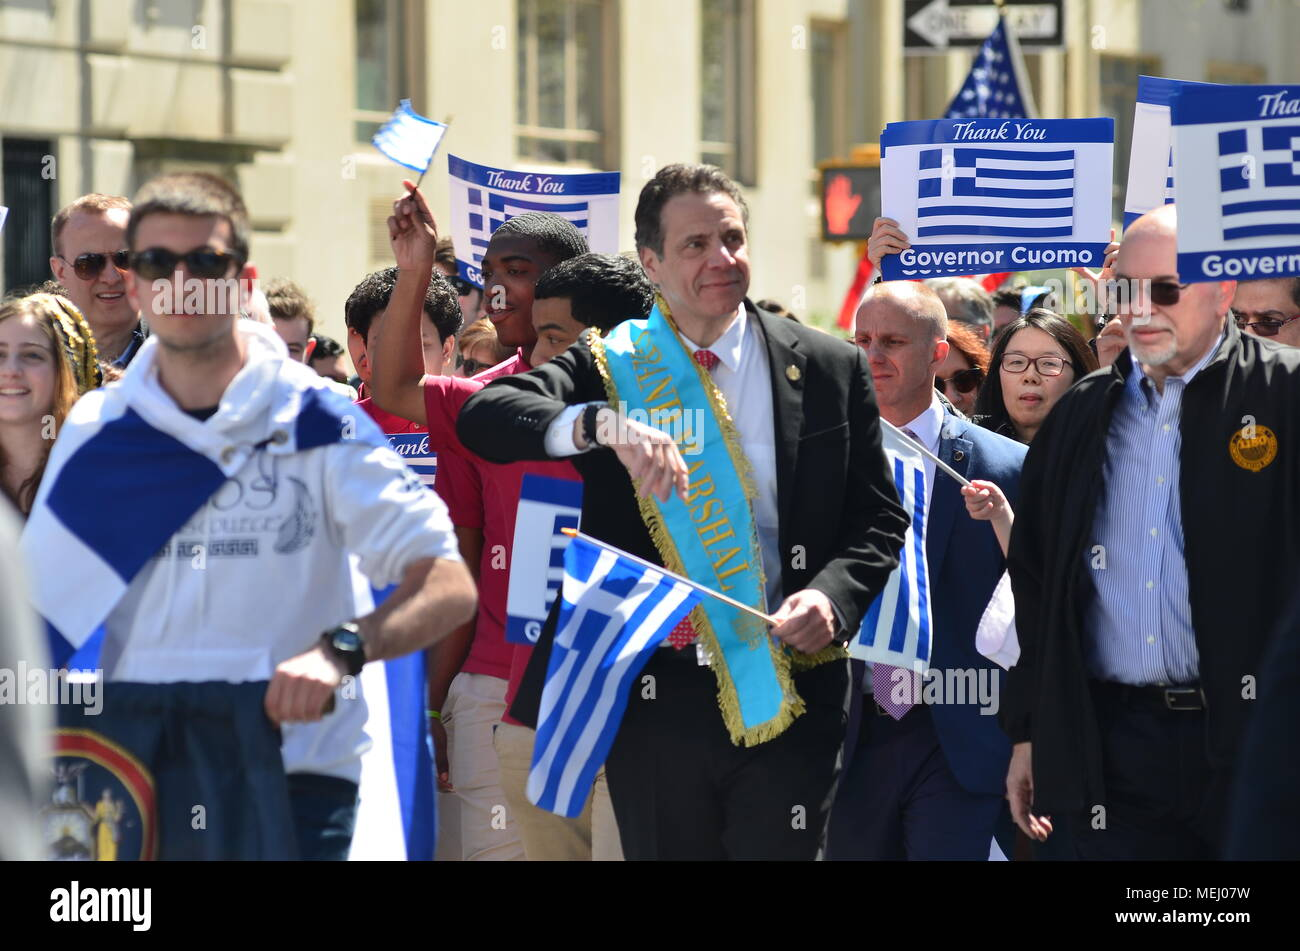 Manhattan, New York, USA. 22nd Apr, 2018. Governor Andrew M. Cuomo attends Greek Independence Parade on 5th Avenue in New York City. Credit: Ryan Rahman/Alamy Live News - Stock Image